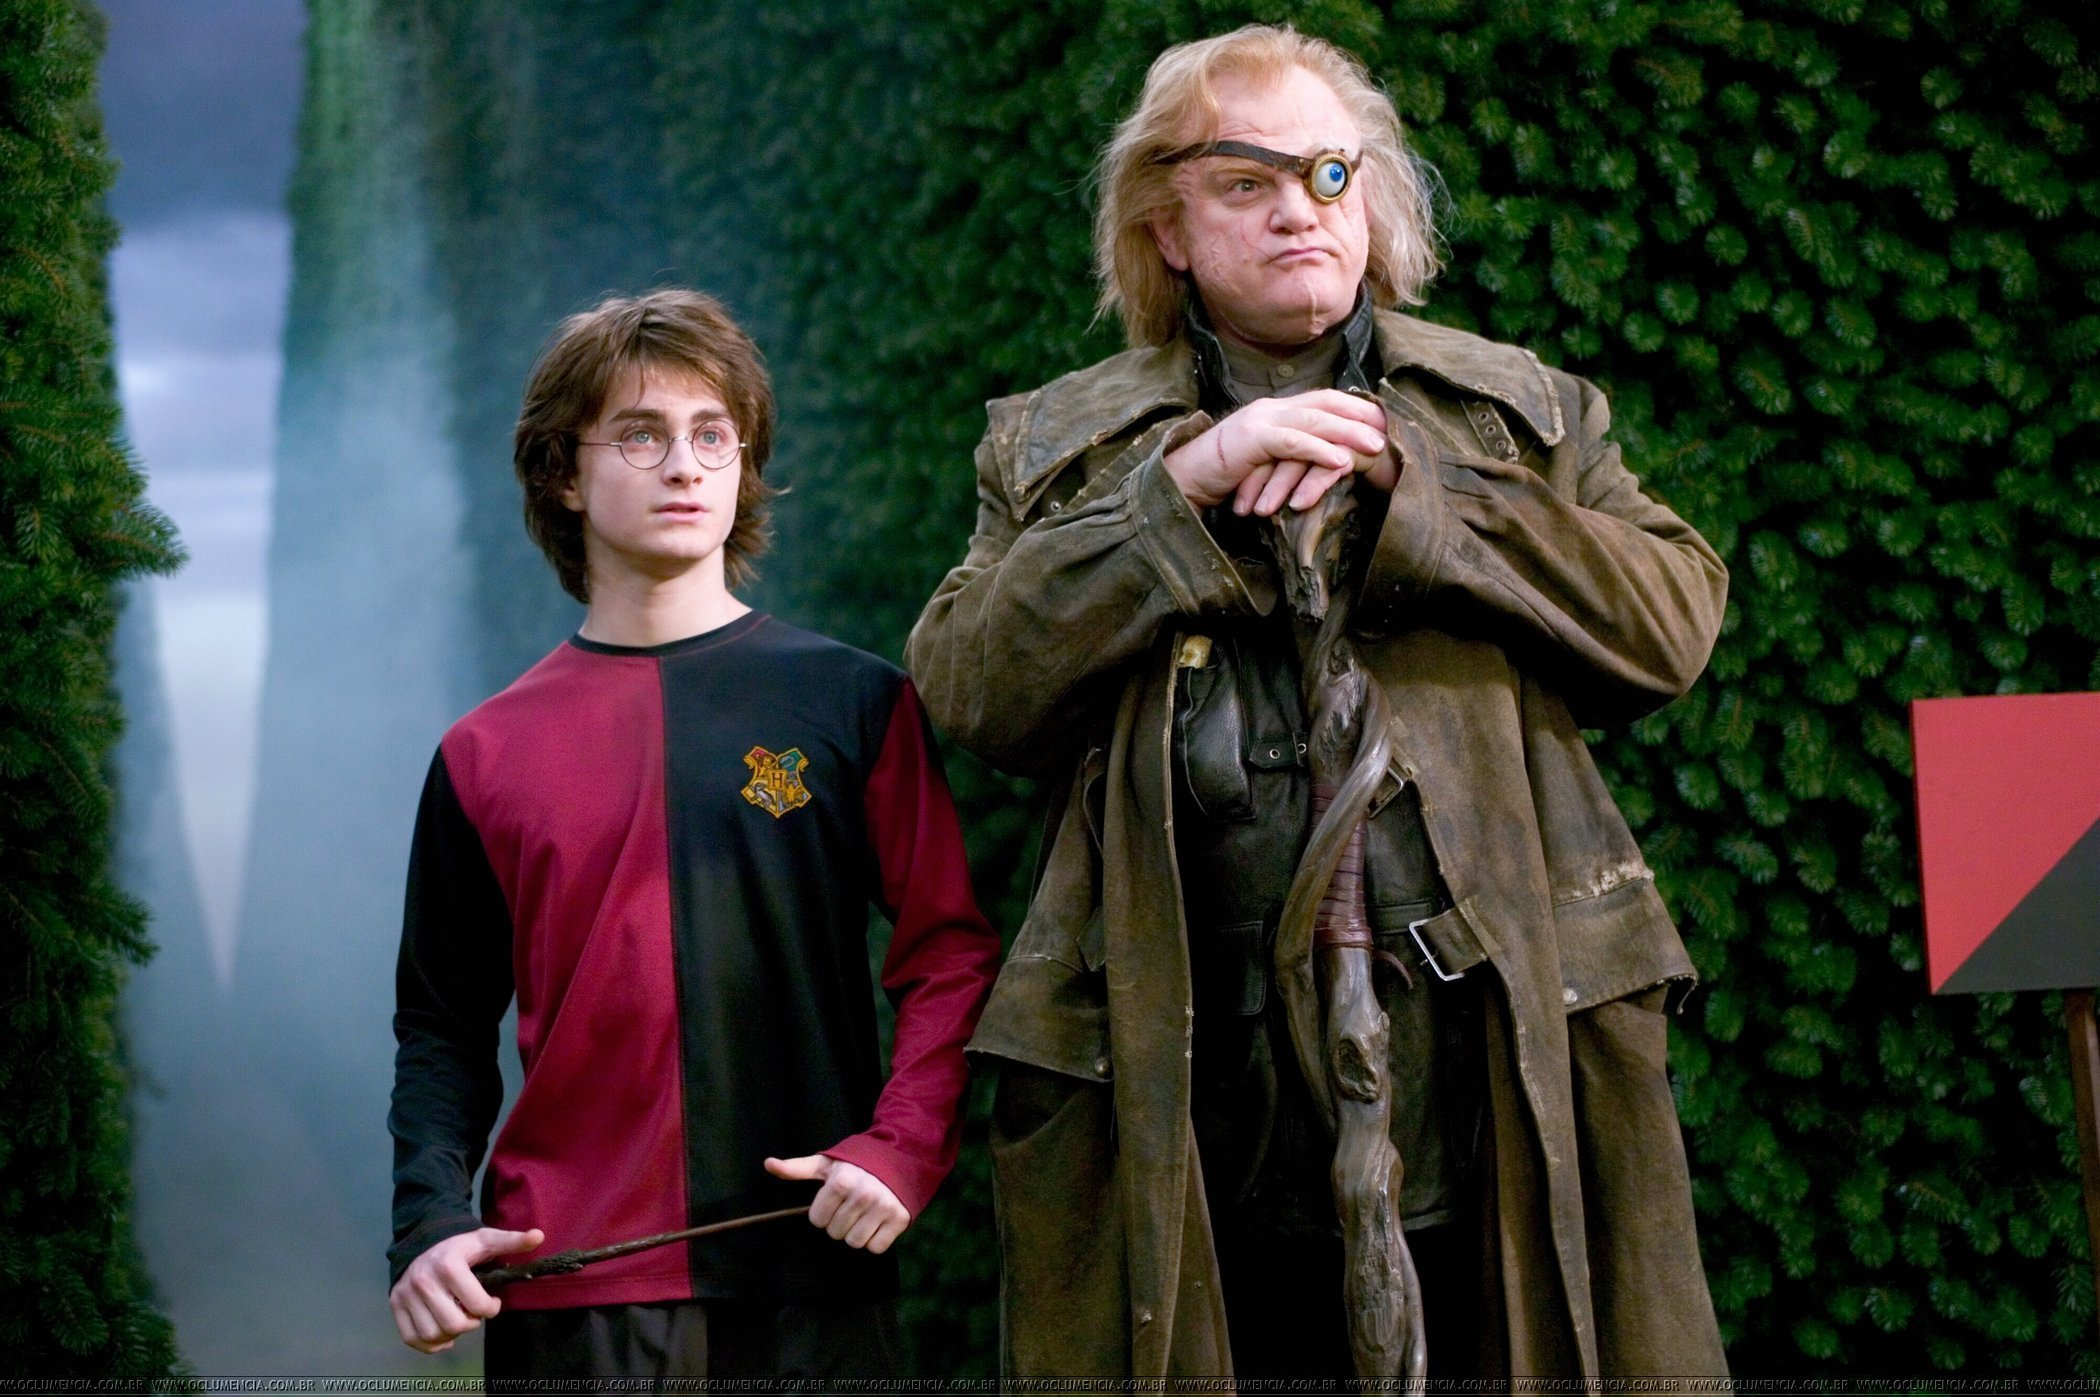 The Harry Potter Movies In A Few Sentences Each – Pears